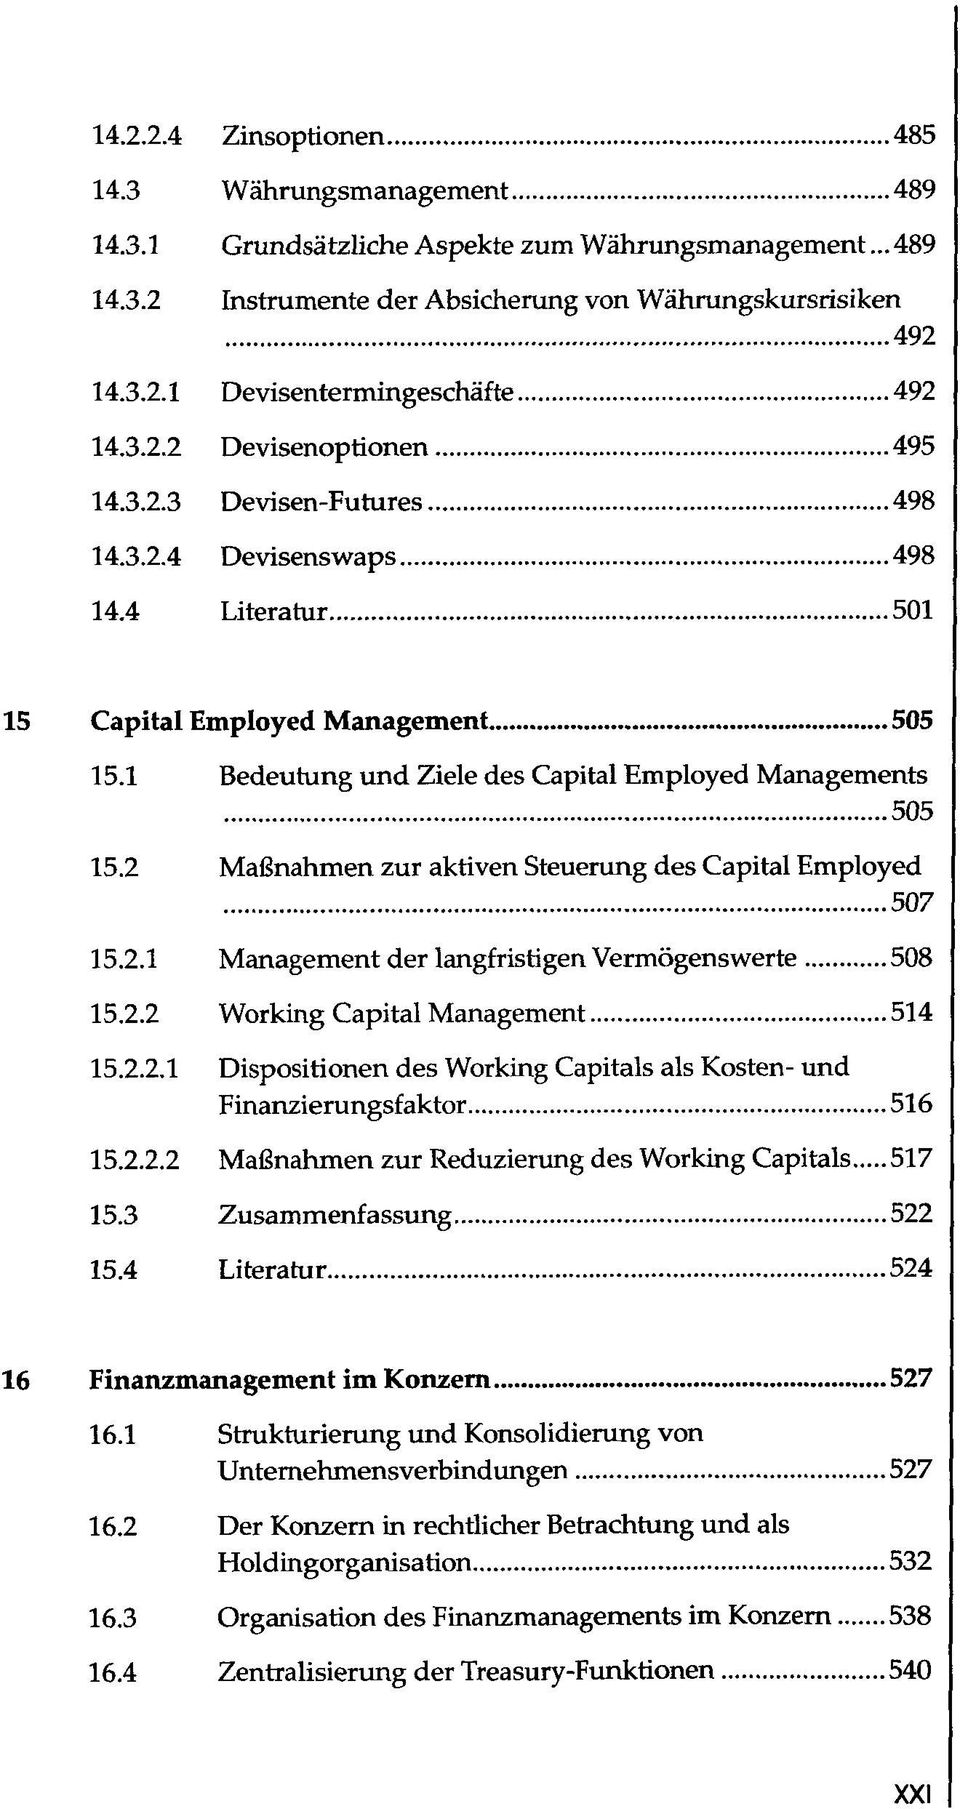 2 Maßnahmen zur aktiven Steuerung des Capital Employed 507 15.2.1 Management der langfristigen Vermögenswerte 508 15.2.2 Working Capital Management 514 15.2.2.1 Dispositionen des Working Capitals als Kosten- und Finanzierungsfaktor 516 15.